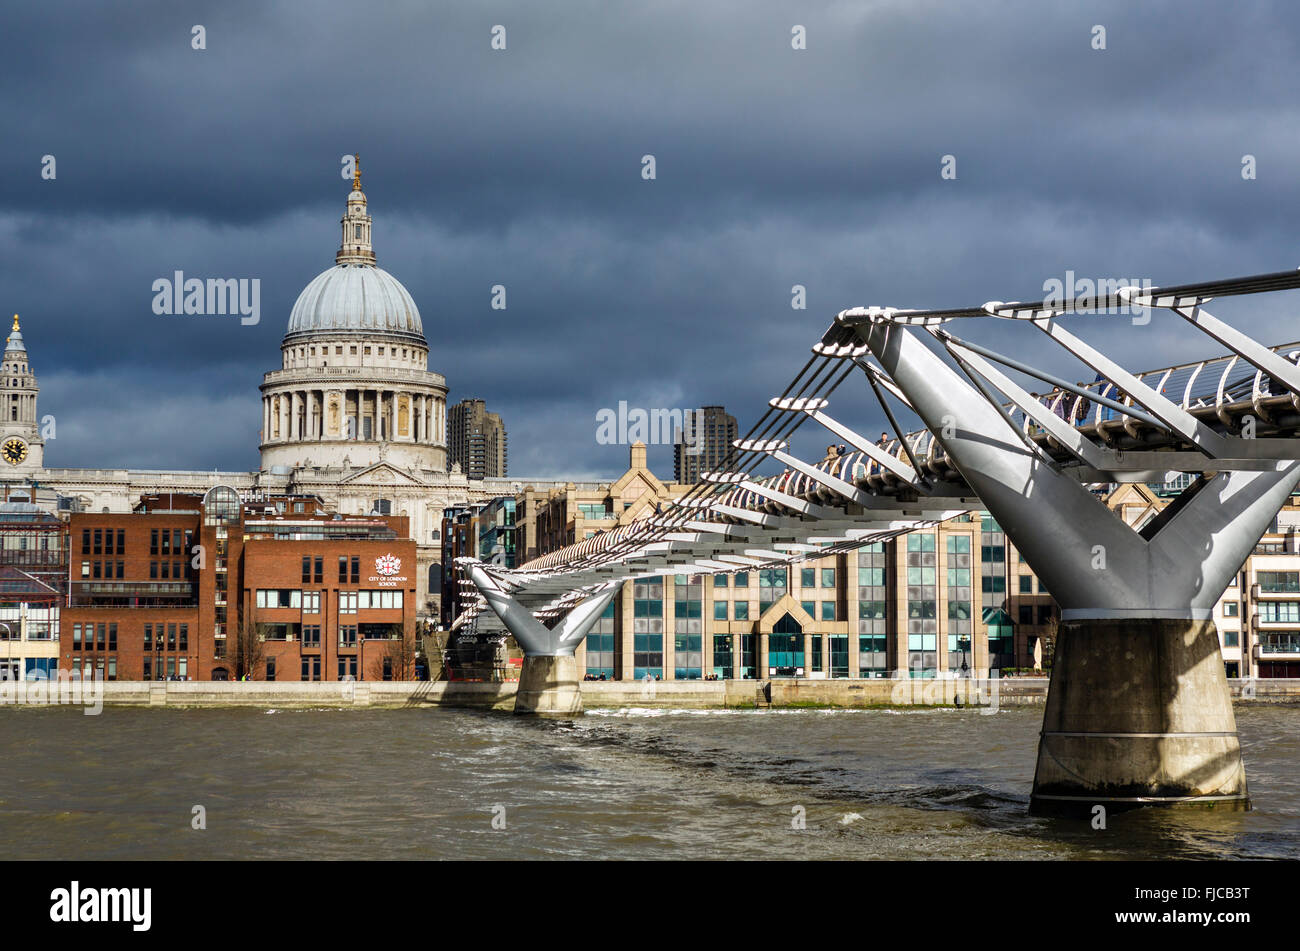 View of Millennium Bridge and River Thames looking towards St Paul's Cathedral, London, England, UK - Stock Image